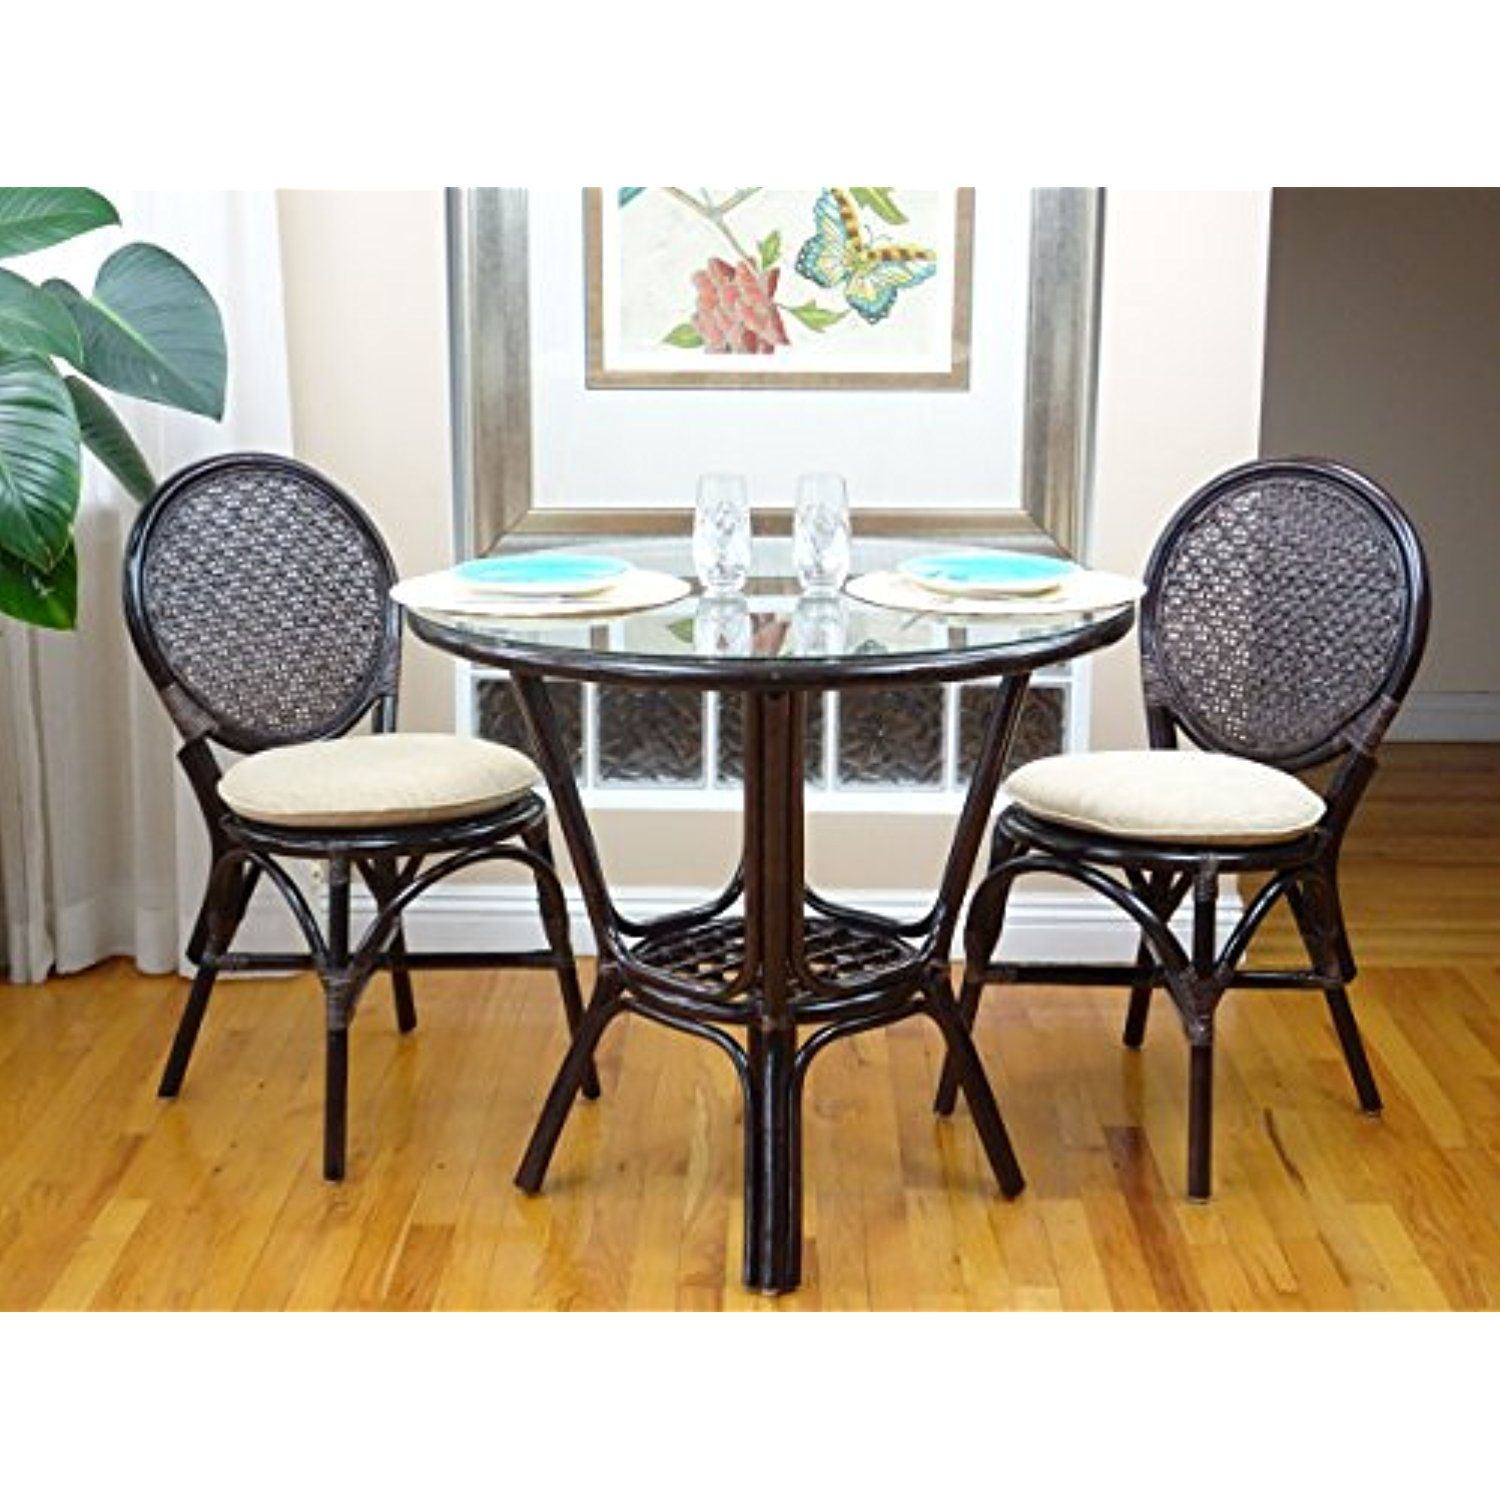 3 Pc Rattan Wicker Dining Set Round Table Glass Top 2 Denver Side